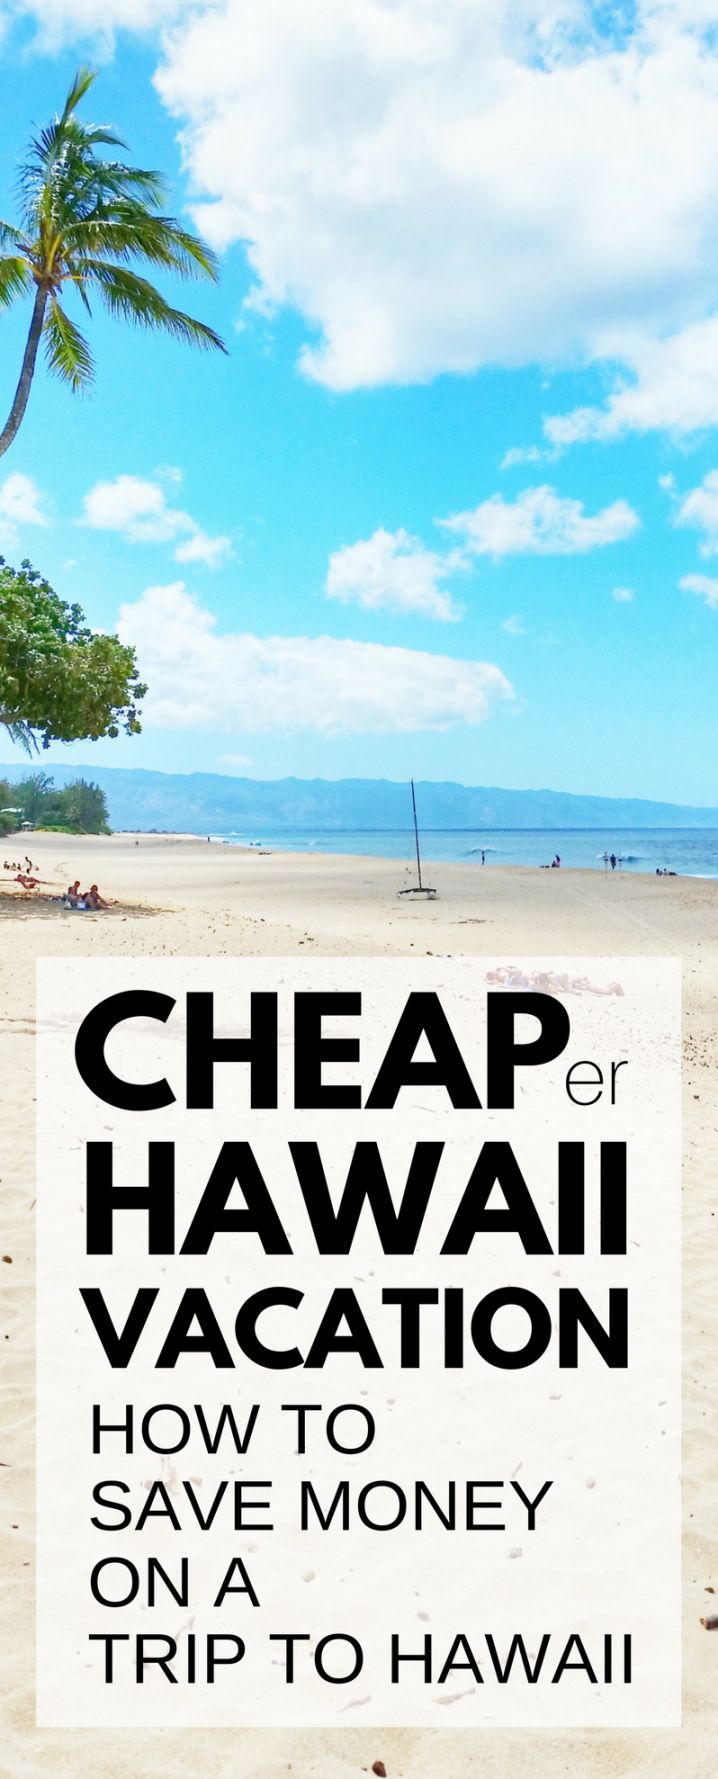 243 Best Budget Travel Images On Pinterest Travel Hacks European Travel And Helpful Hints